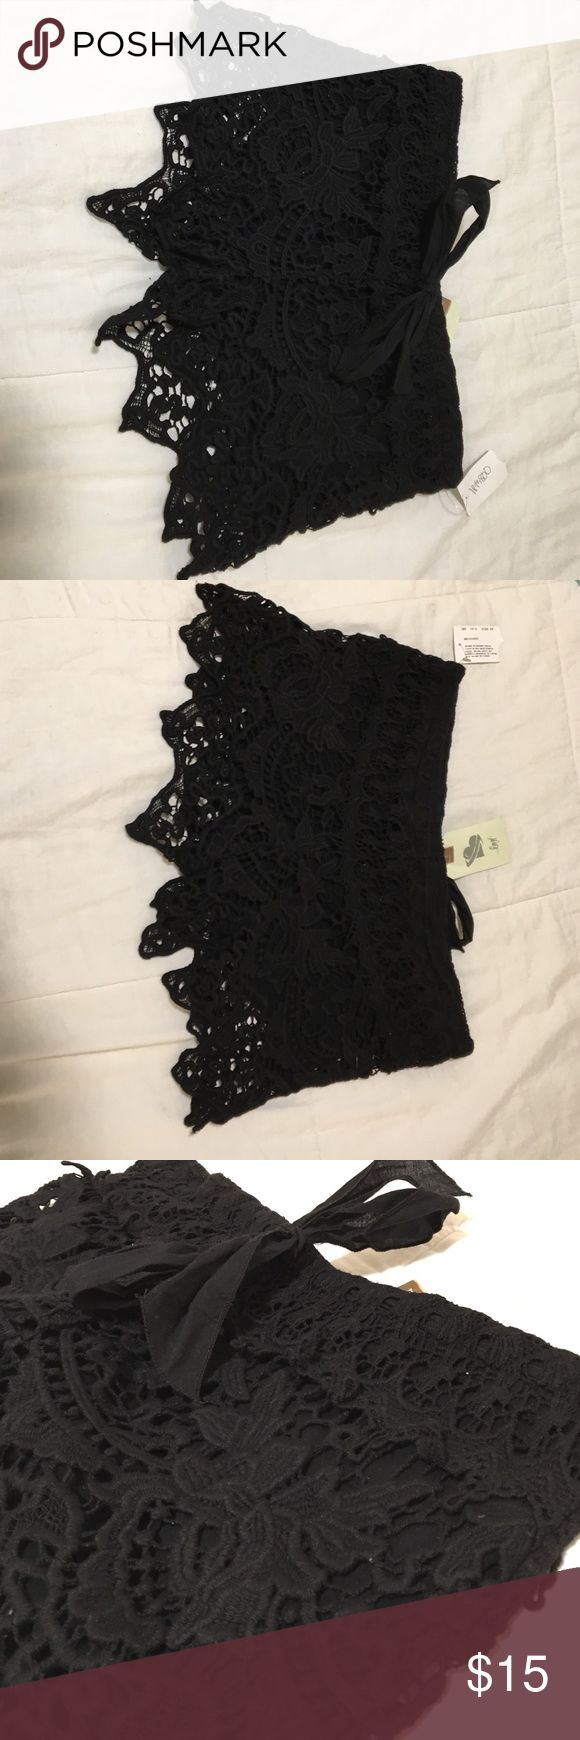 Black crochet shorts Never worn with tags! Stretchy material, adjustable waist. Shorts